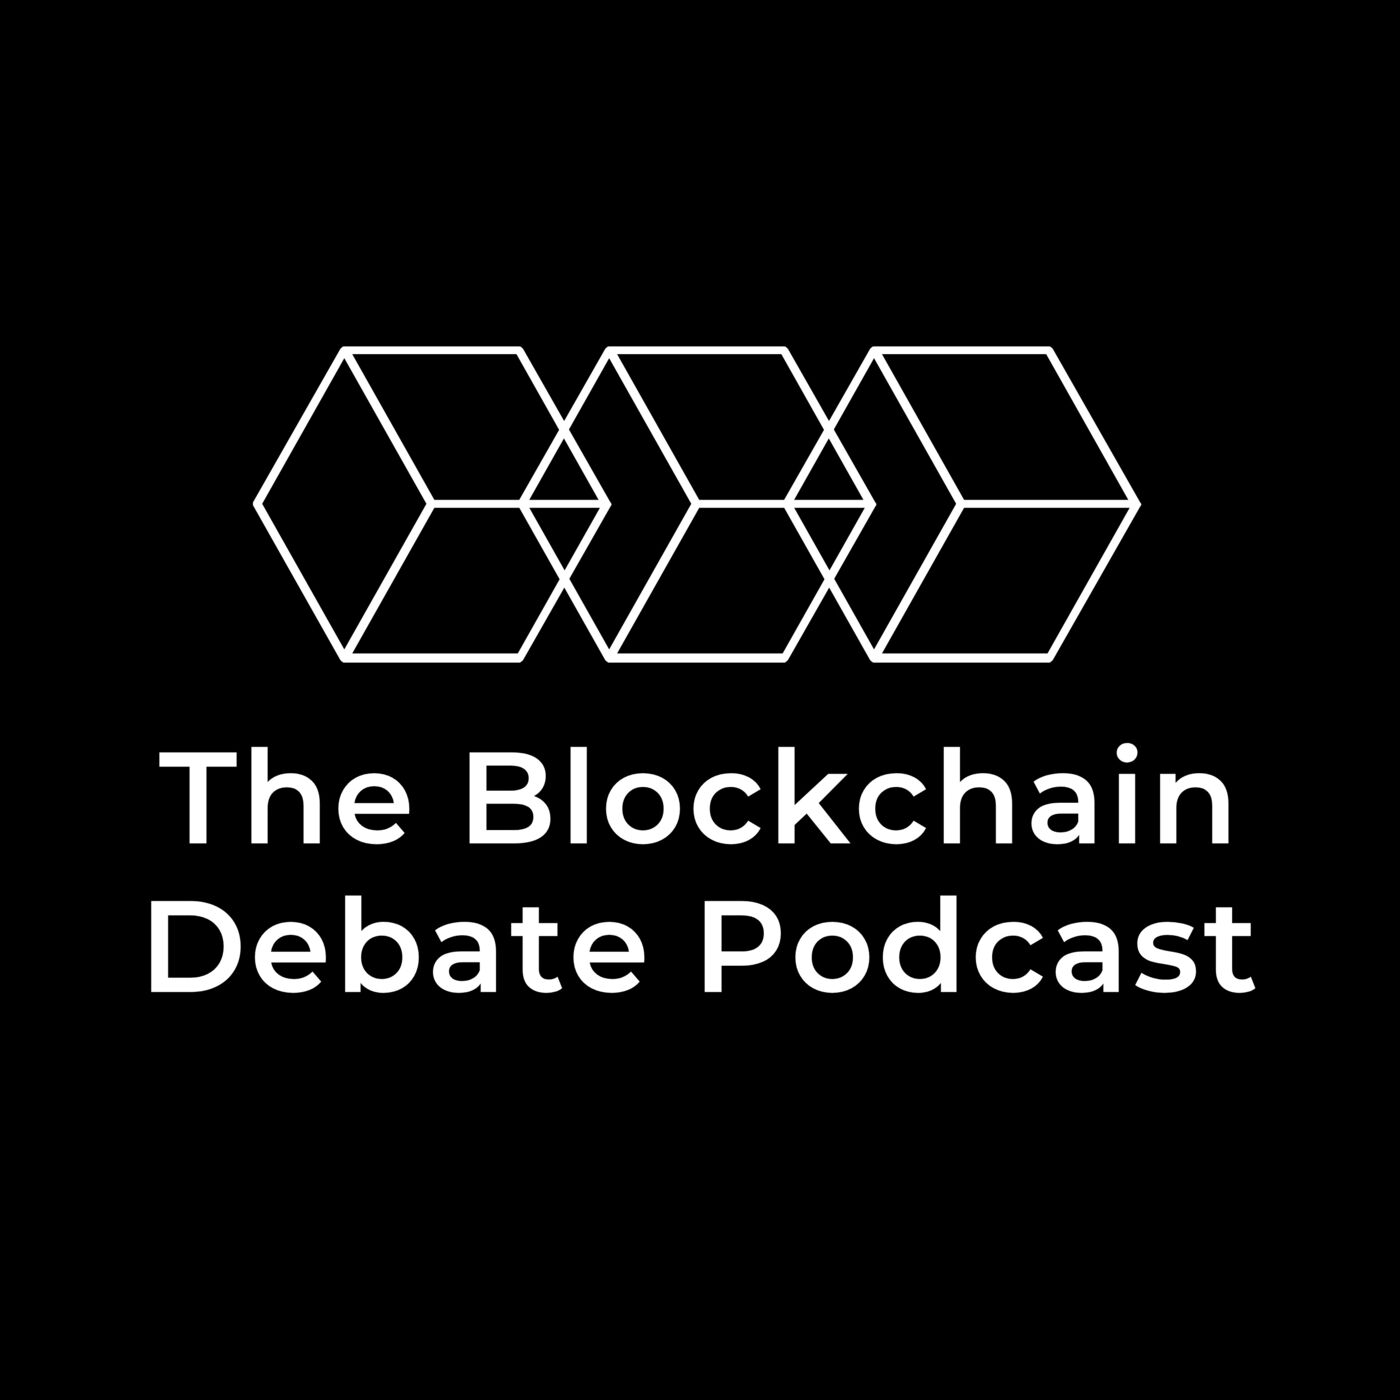 Announcing The Blockchain Debate Podcast